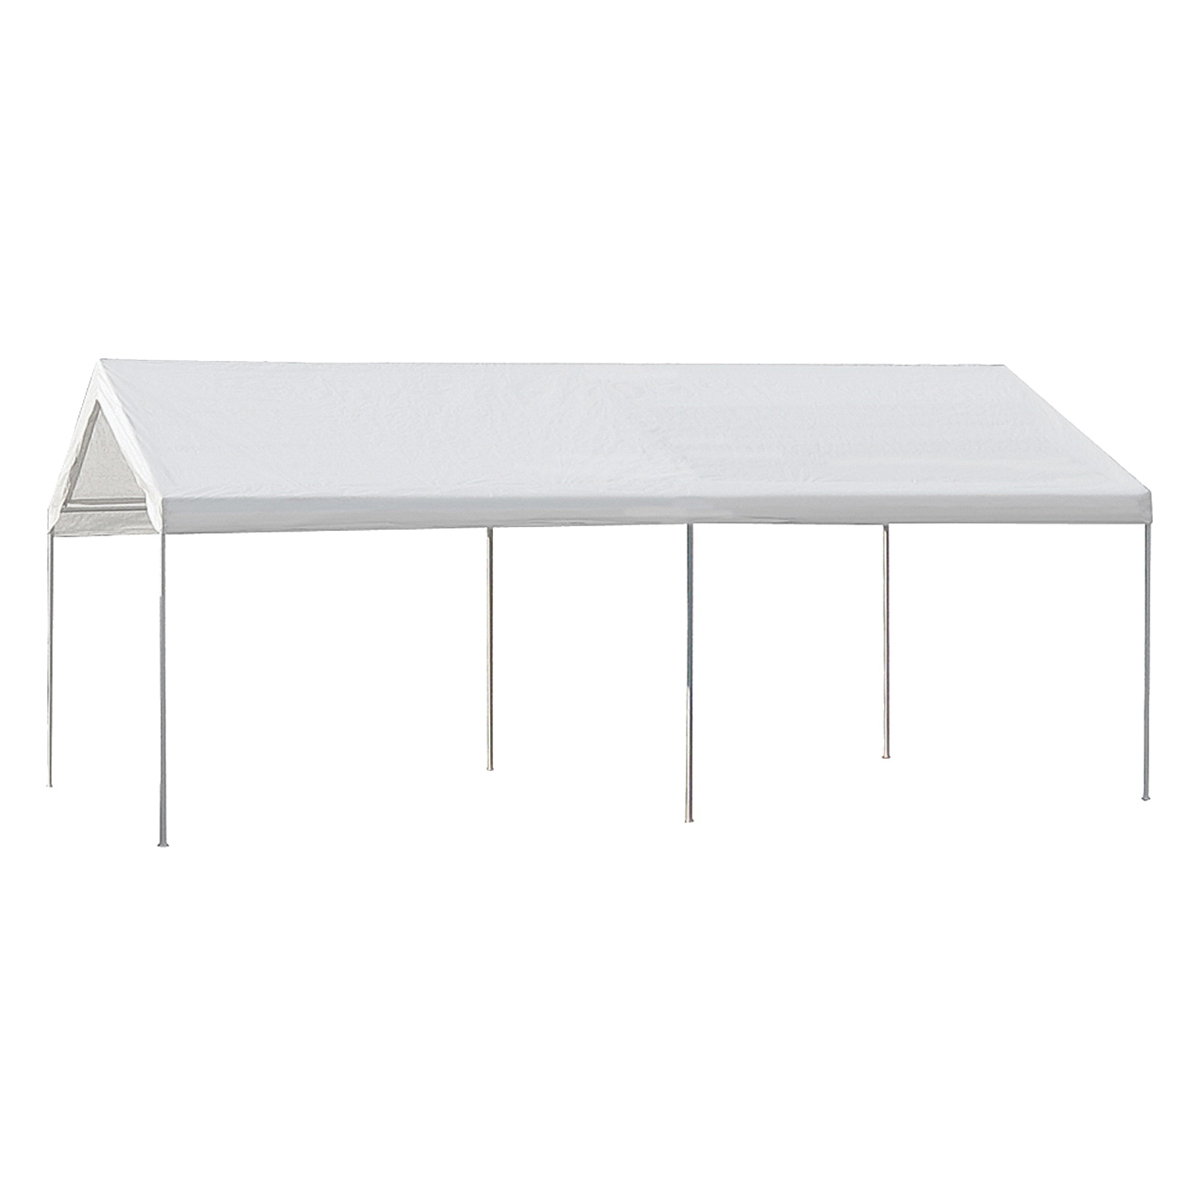 Picture of Seasonal Trends 22006200010 Carport, 10 ft L, 20 ft W, 10.3 in H, Steel Frame, Polyethylene Canopy, White Canopy